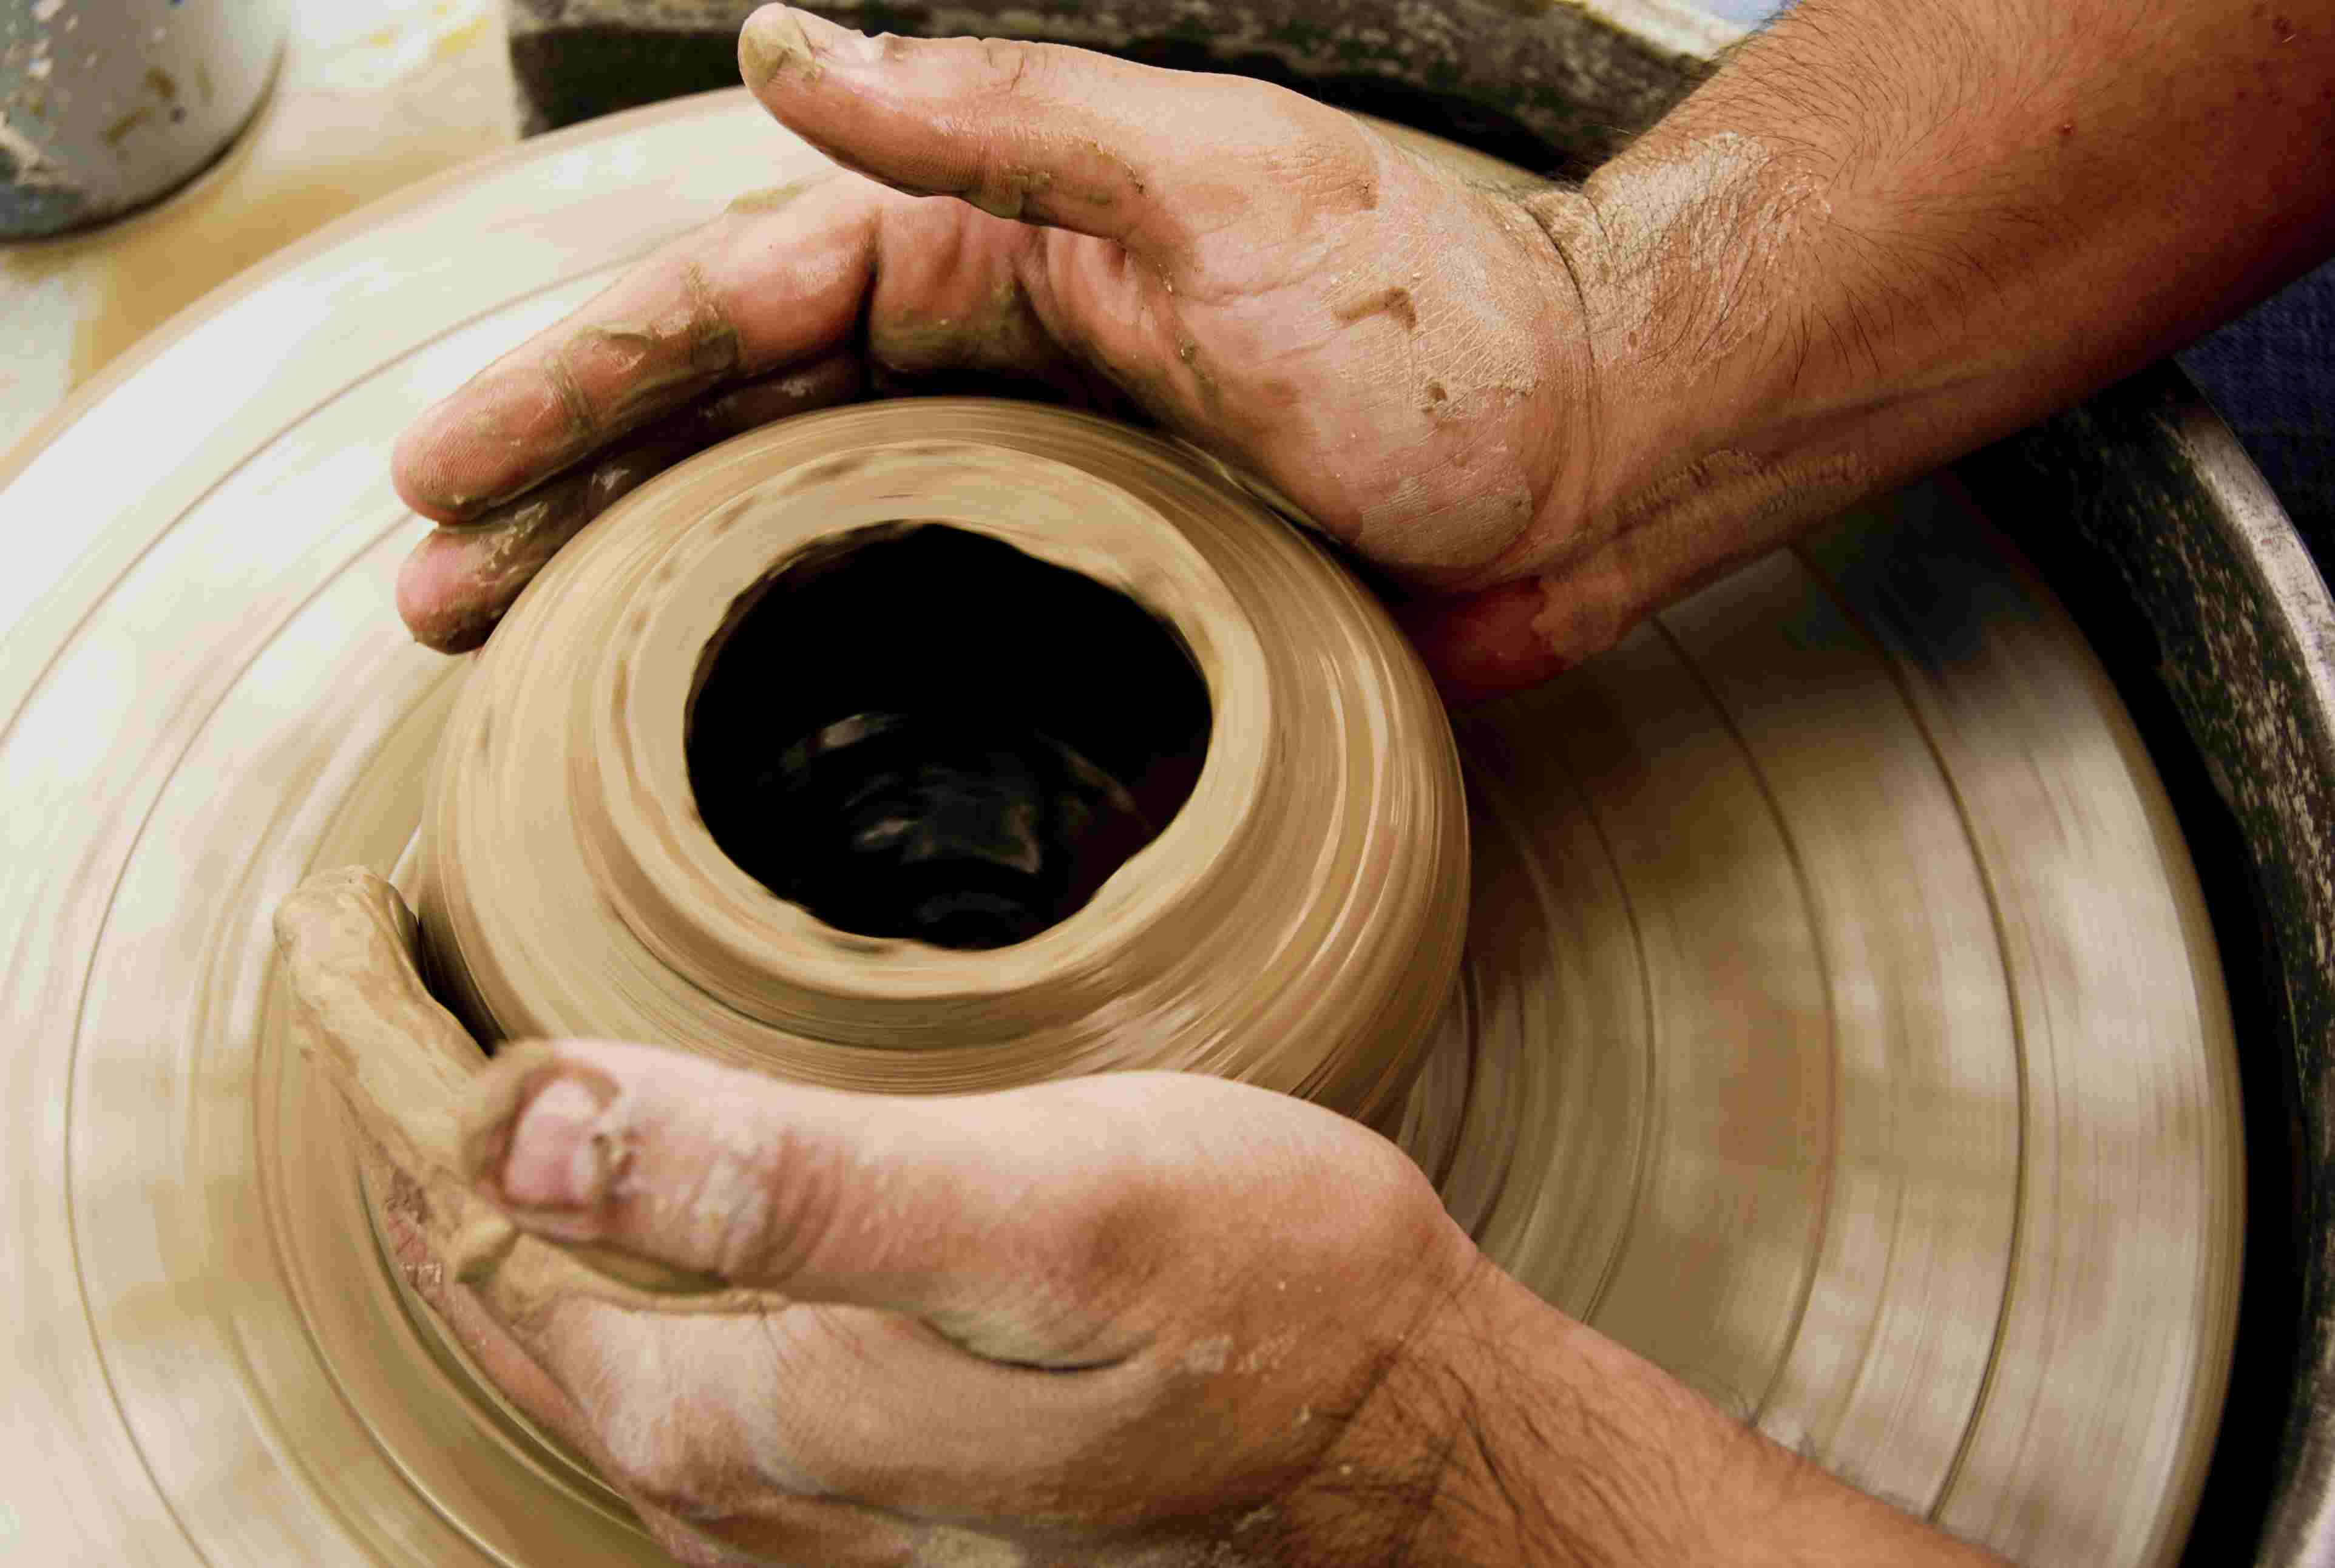 A man's hands at the potter's wheel